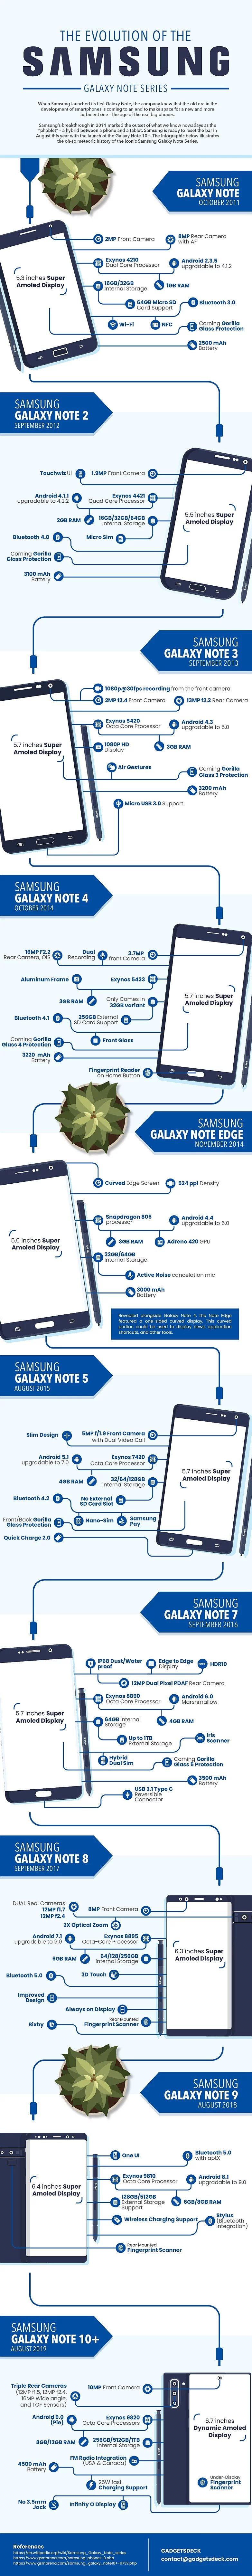 Samsung Note evolucija